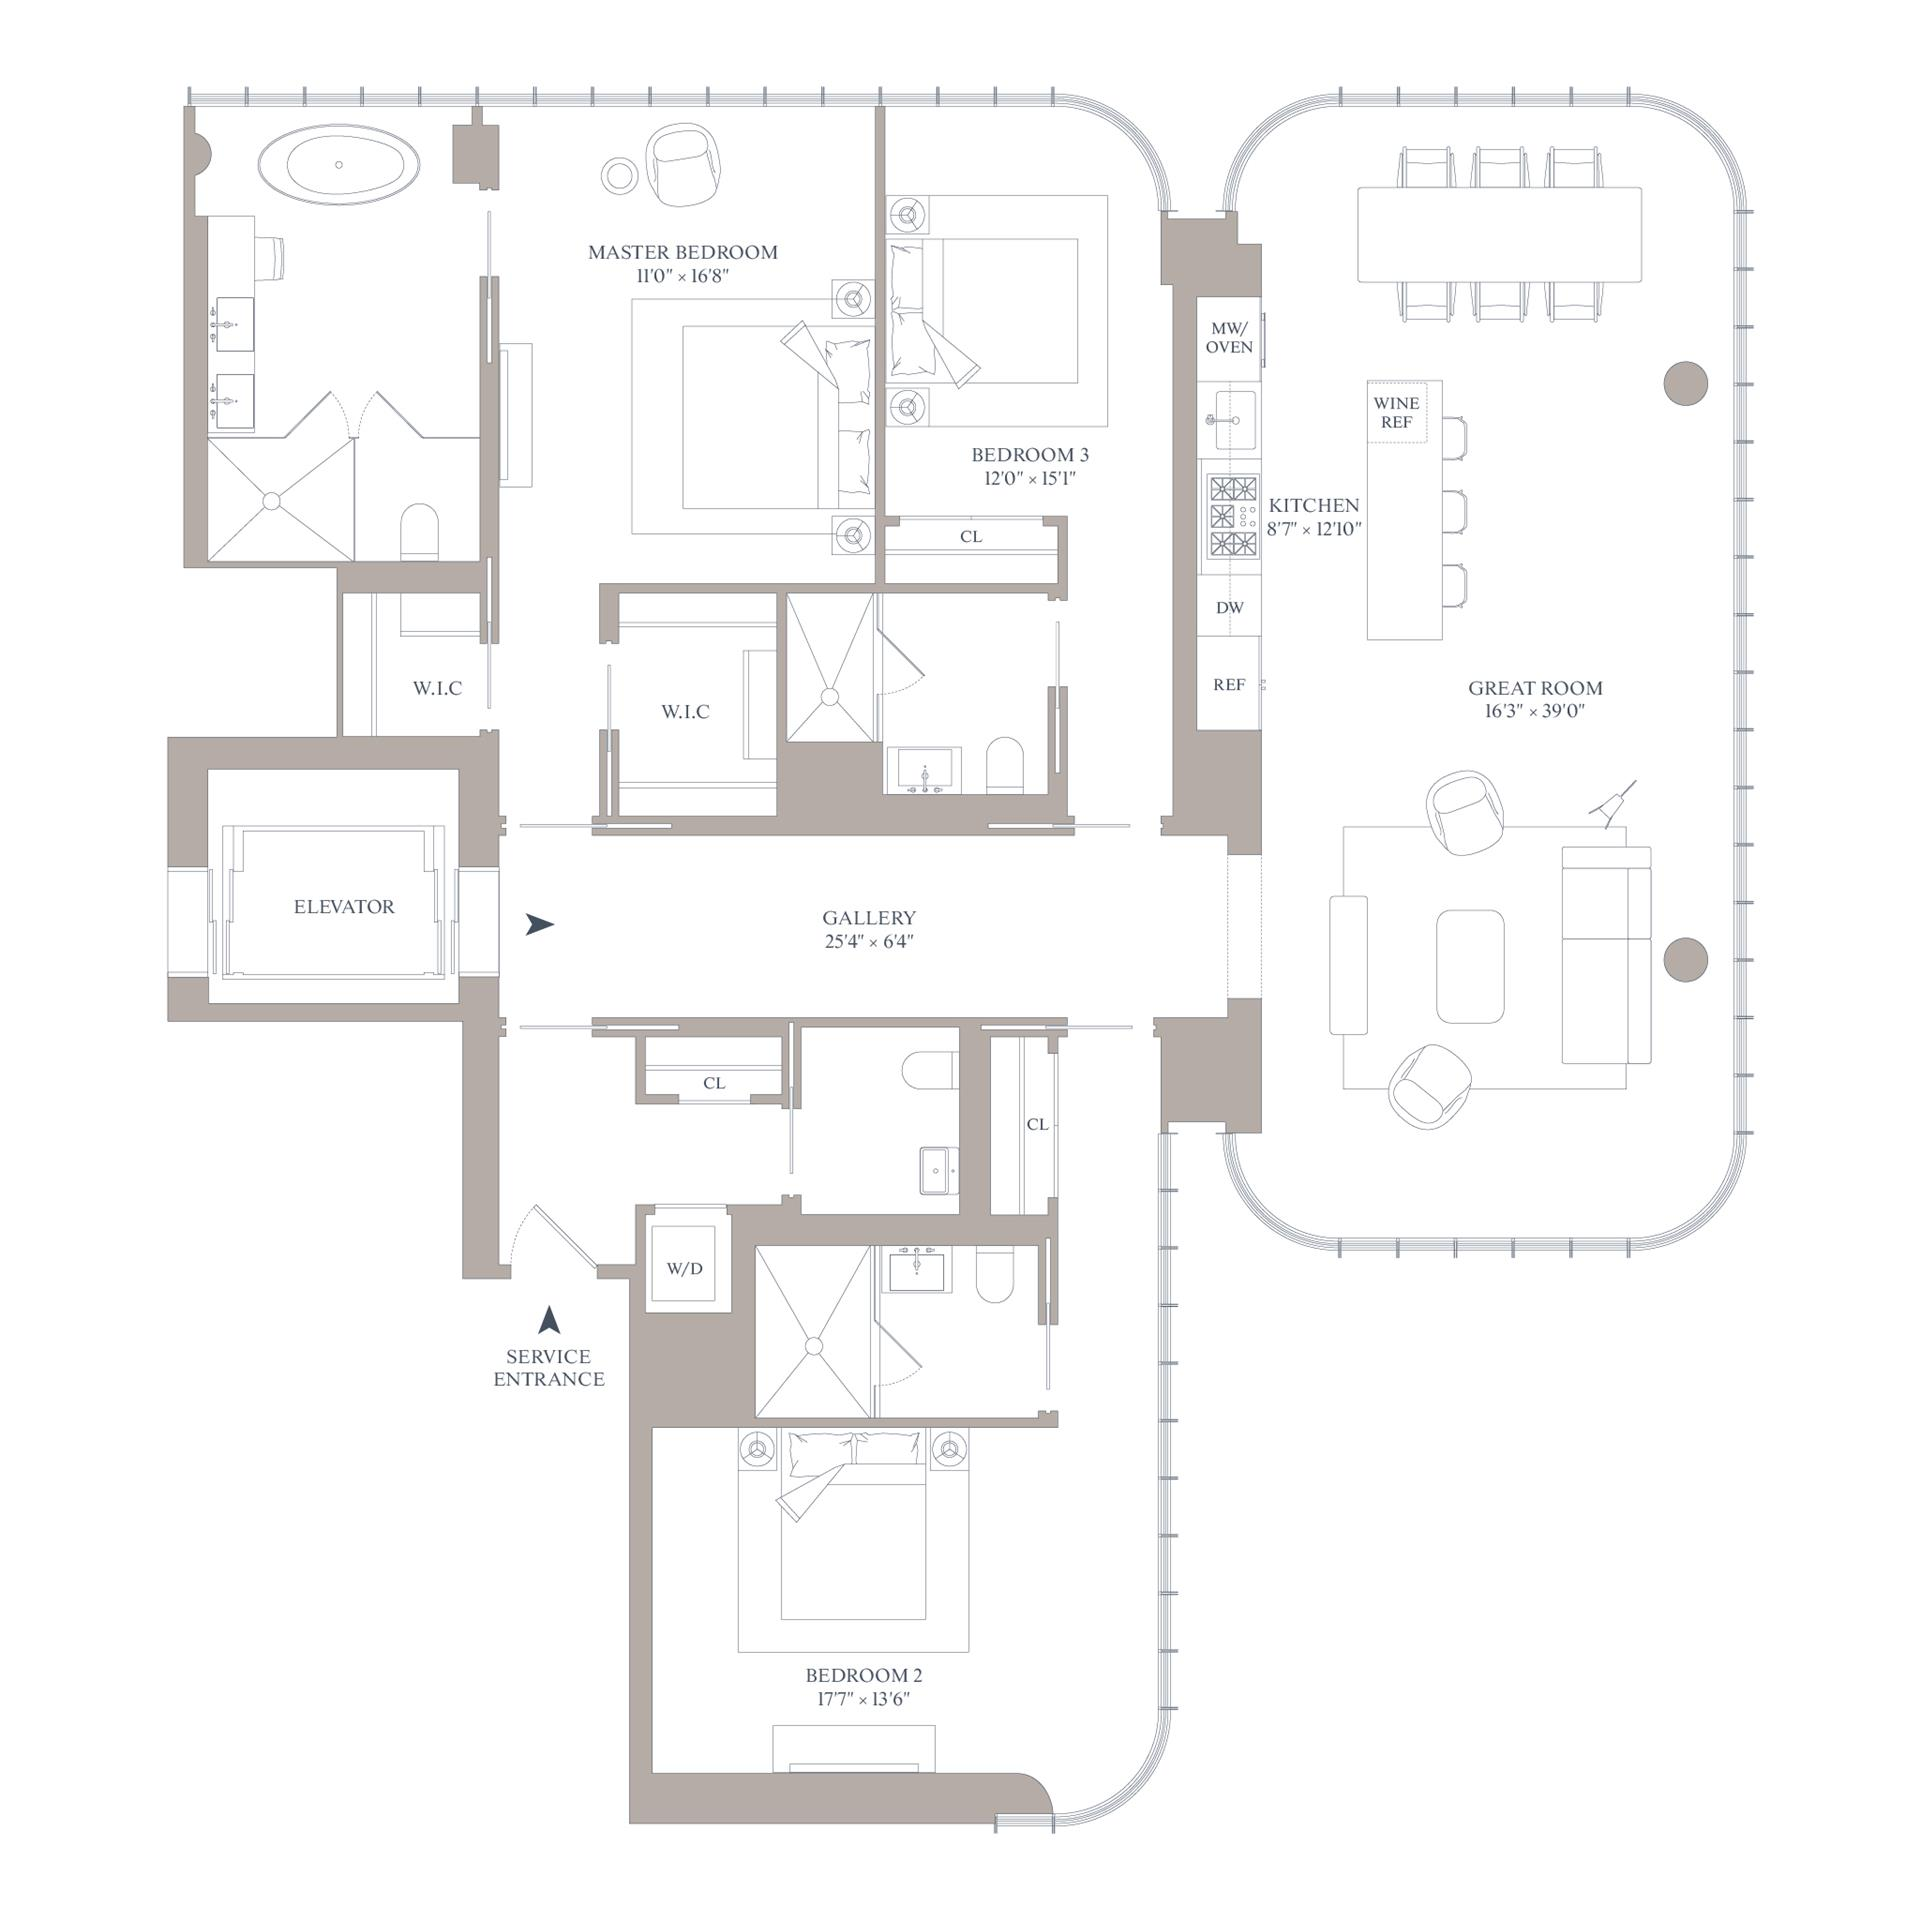 Floor plan of 565 Broome St, N18B - SoHo - Nolita, New York